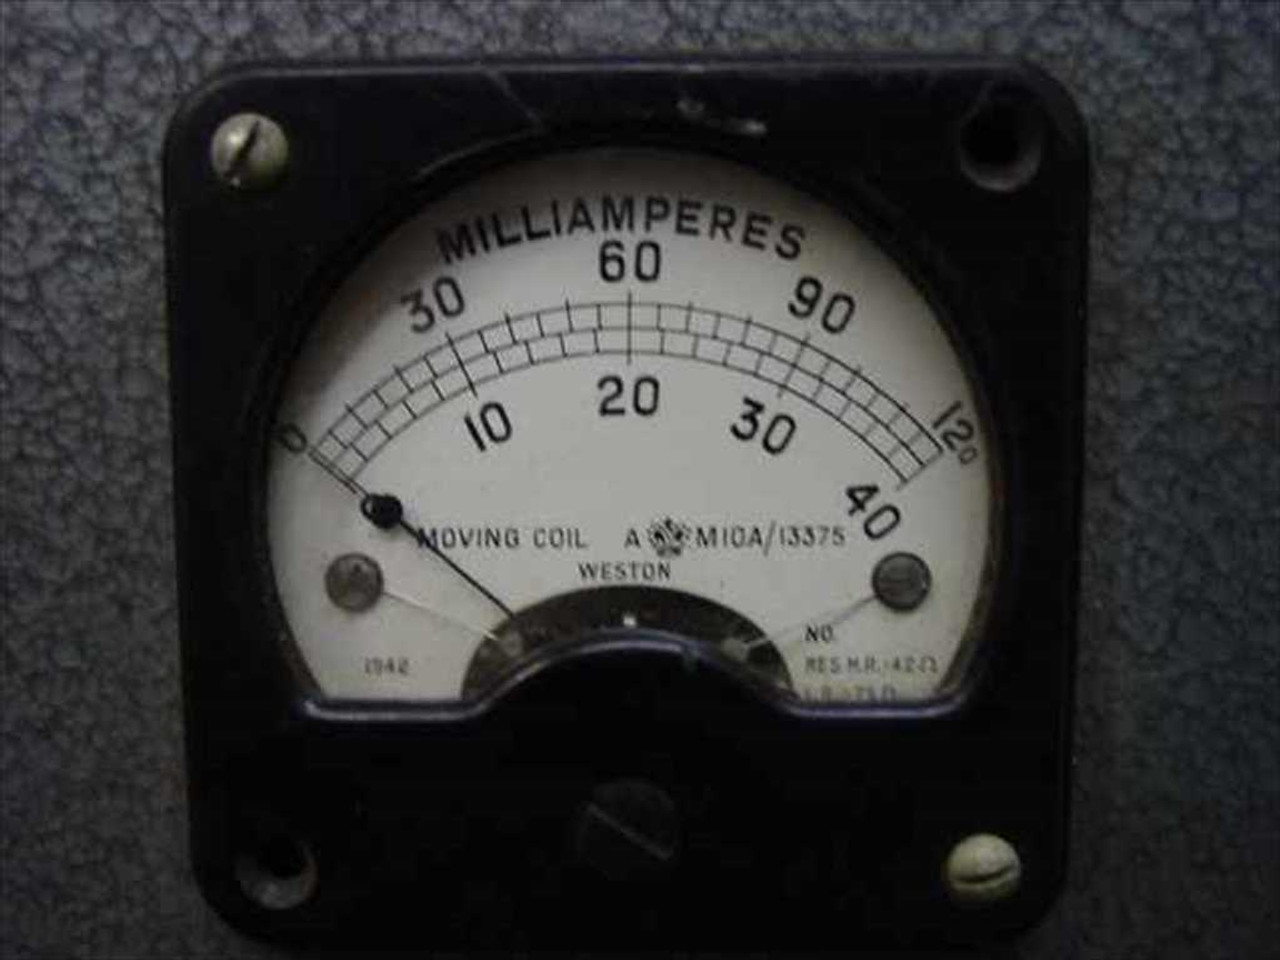 Vintage Rackmount Test Set Rotary Timing Oscilloscope Frequency Generator  Milliamp Meter